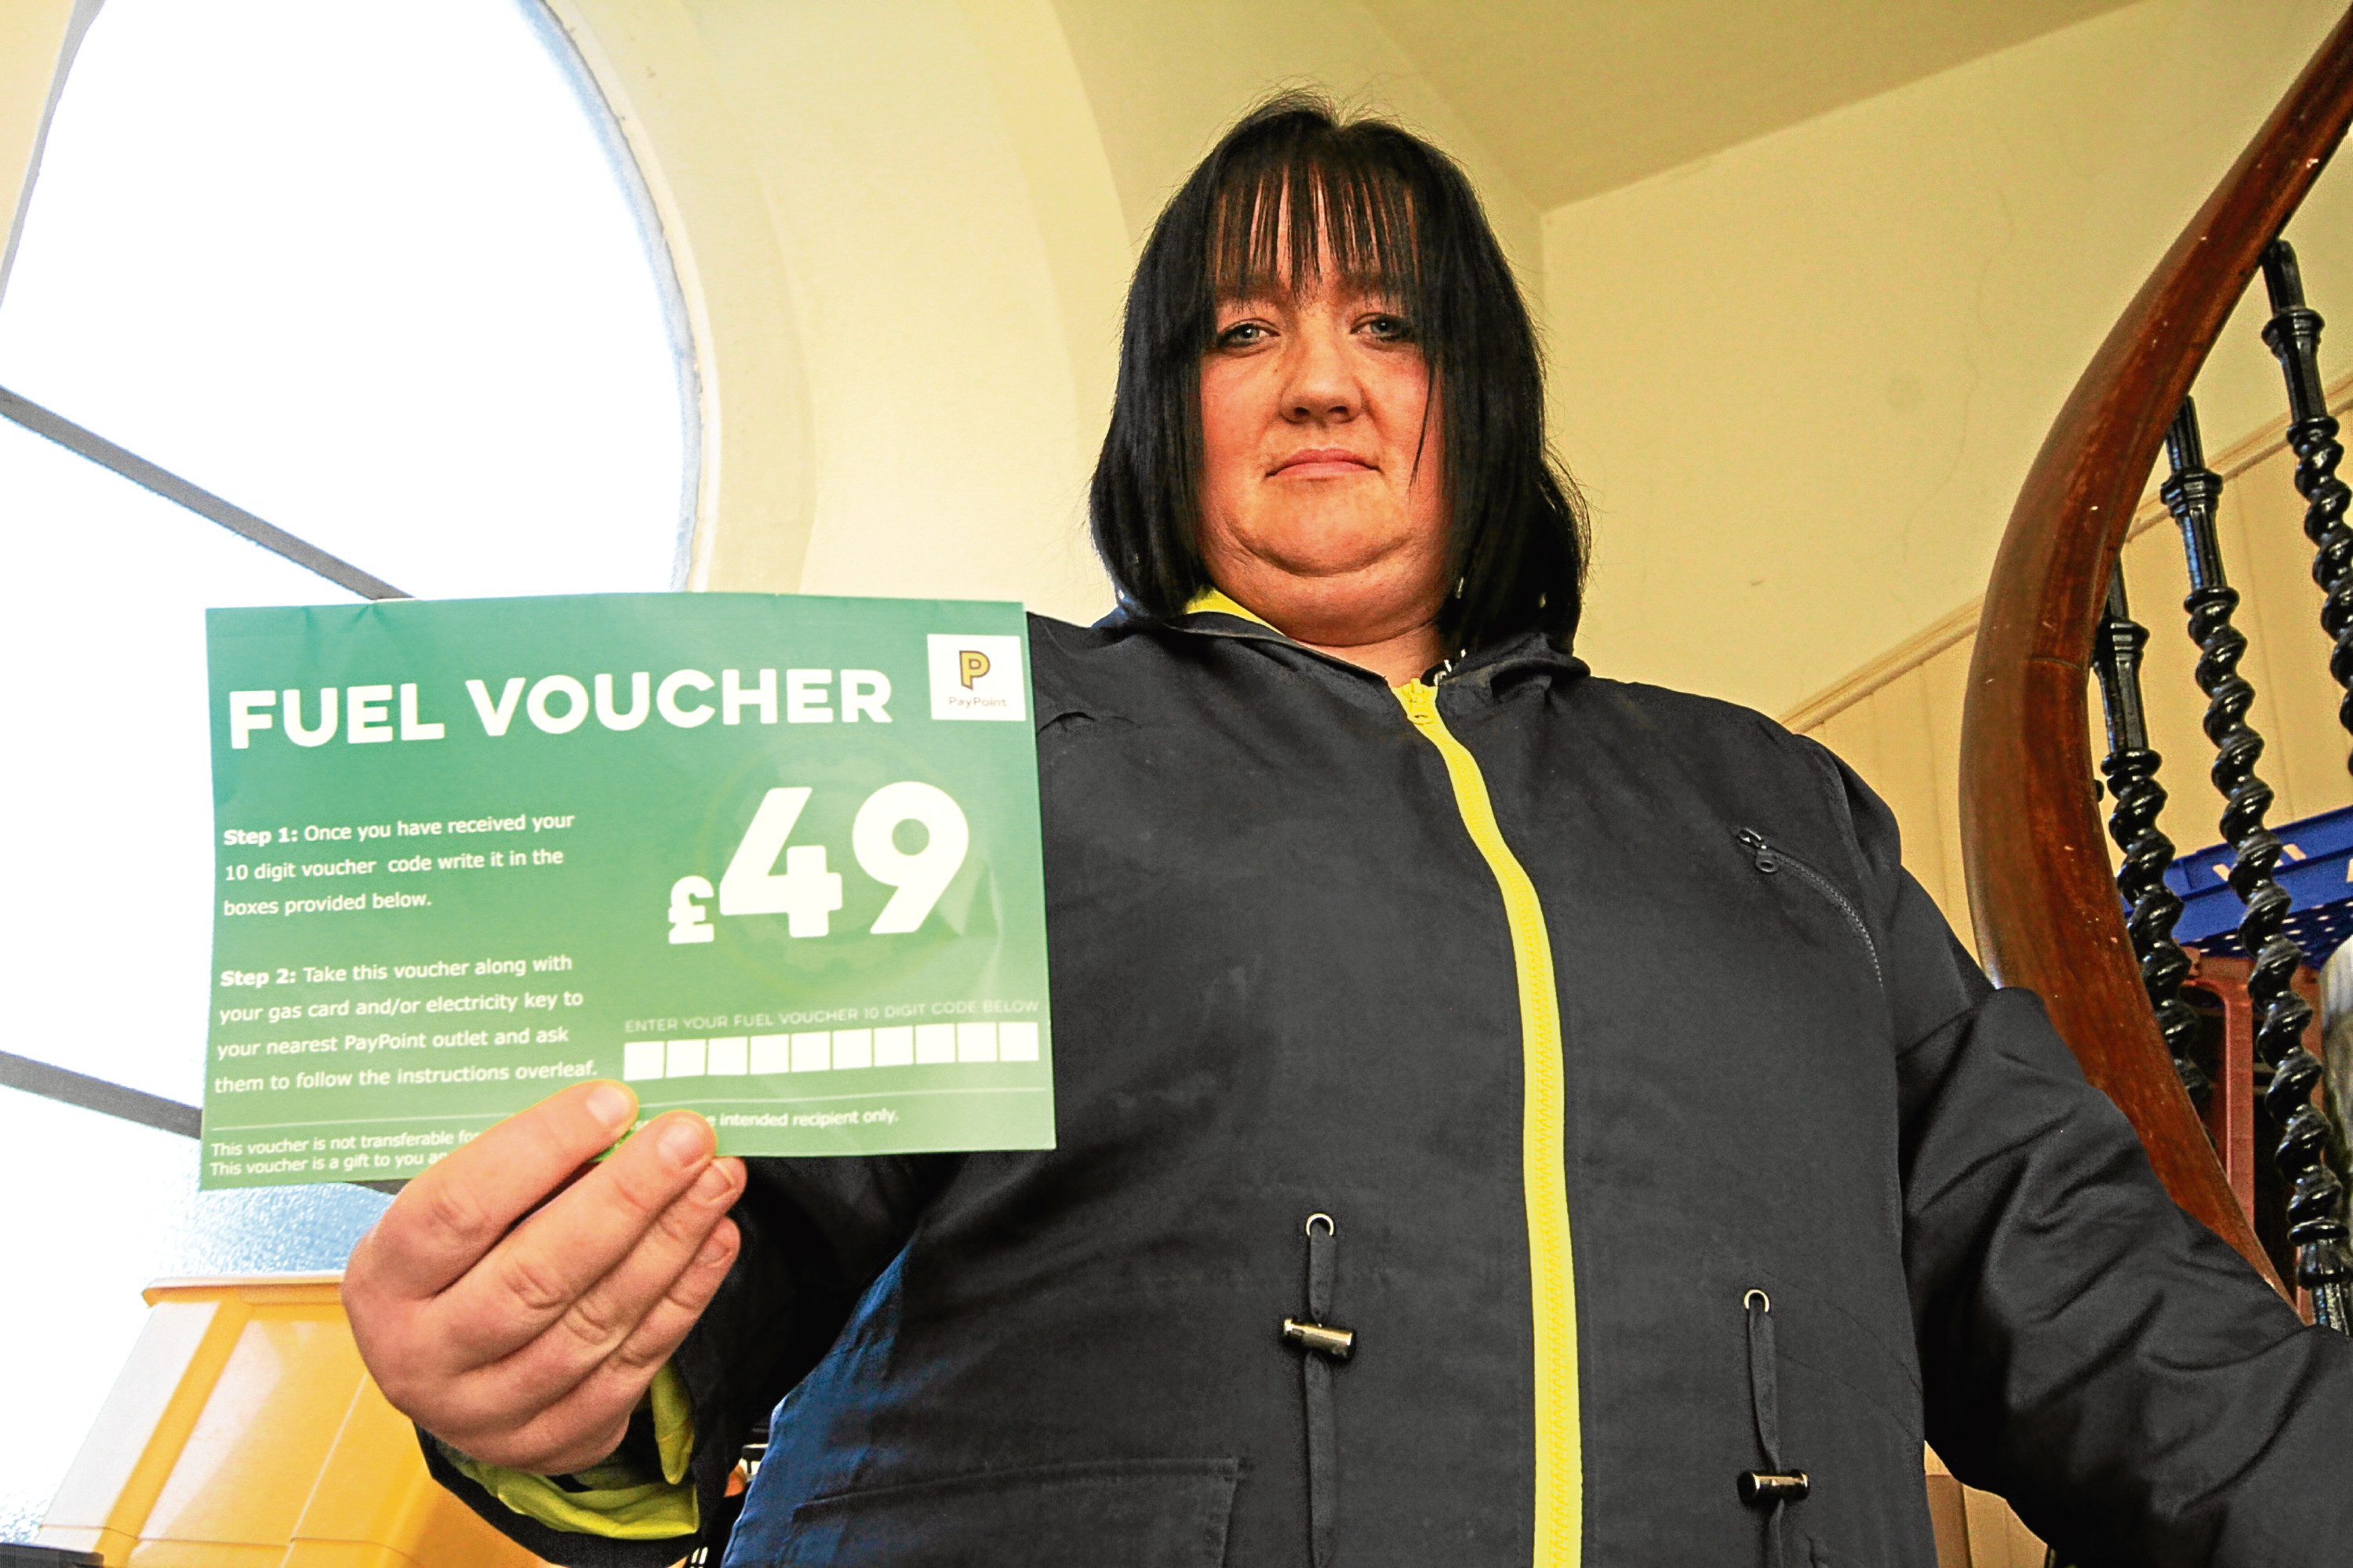 Sonya Petrie, 37, was given one of the last few fuel vouchers available at Dundee Foodbank.